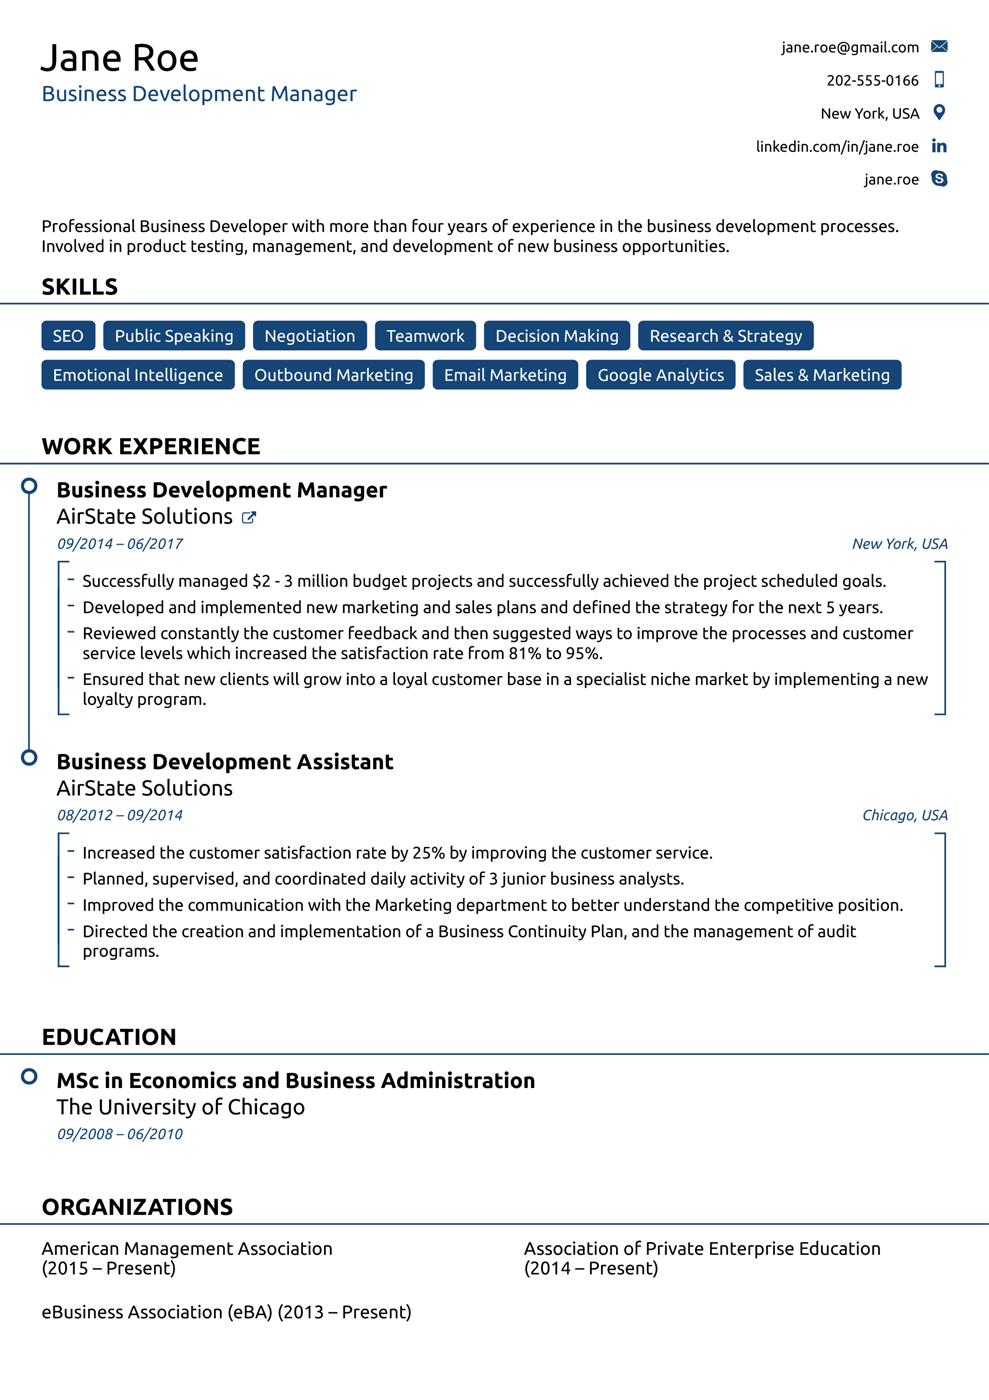 Resume For College Applications | 8 Best Online Resume Templates Of 2019 Download Customize